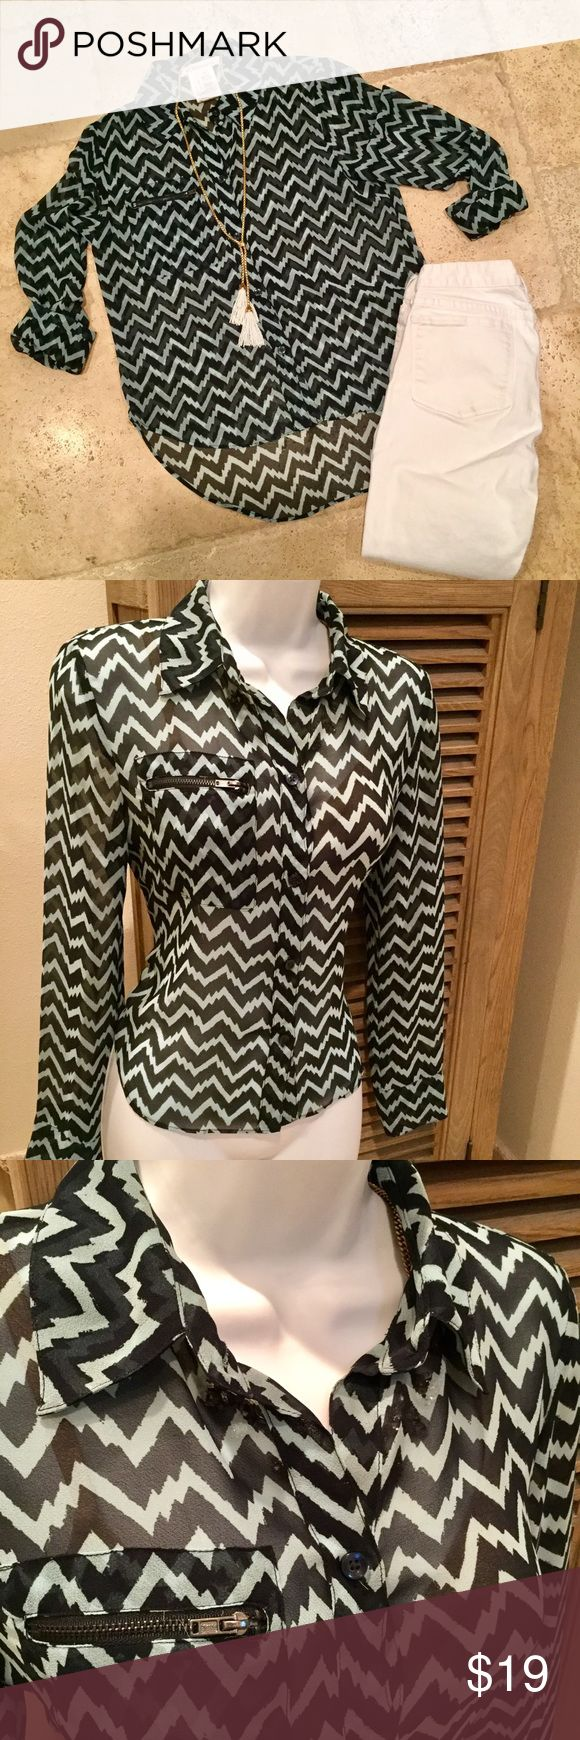 BCBG Chevron Blouse Sheer BCBGeneration Navy and aqua chevron print button up with zipper detail pocket and high/low hem. BCBGeneration Tops Button Down Shirts